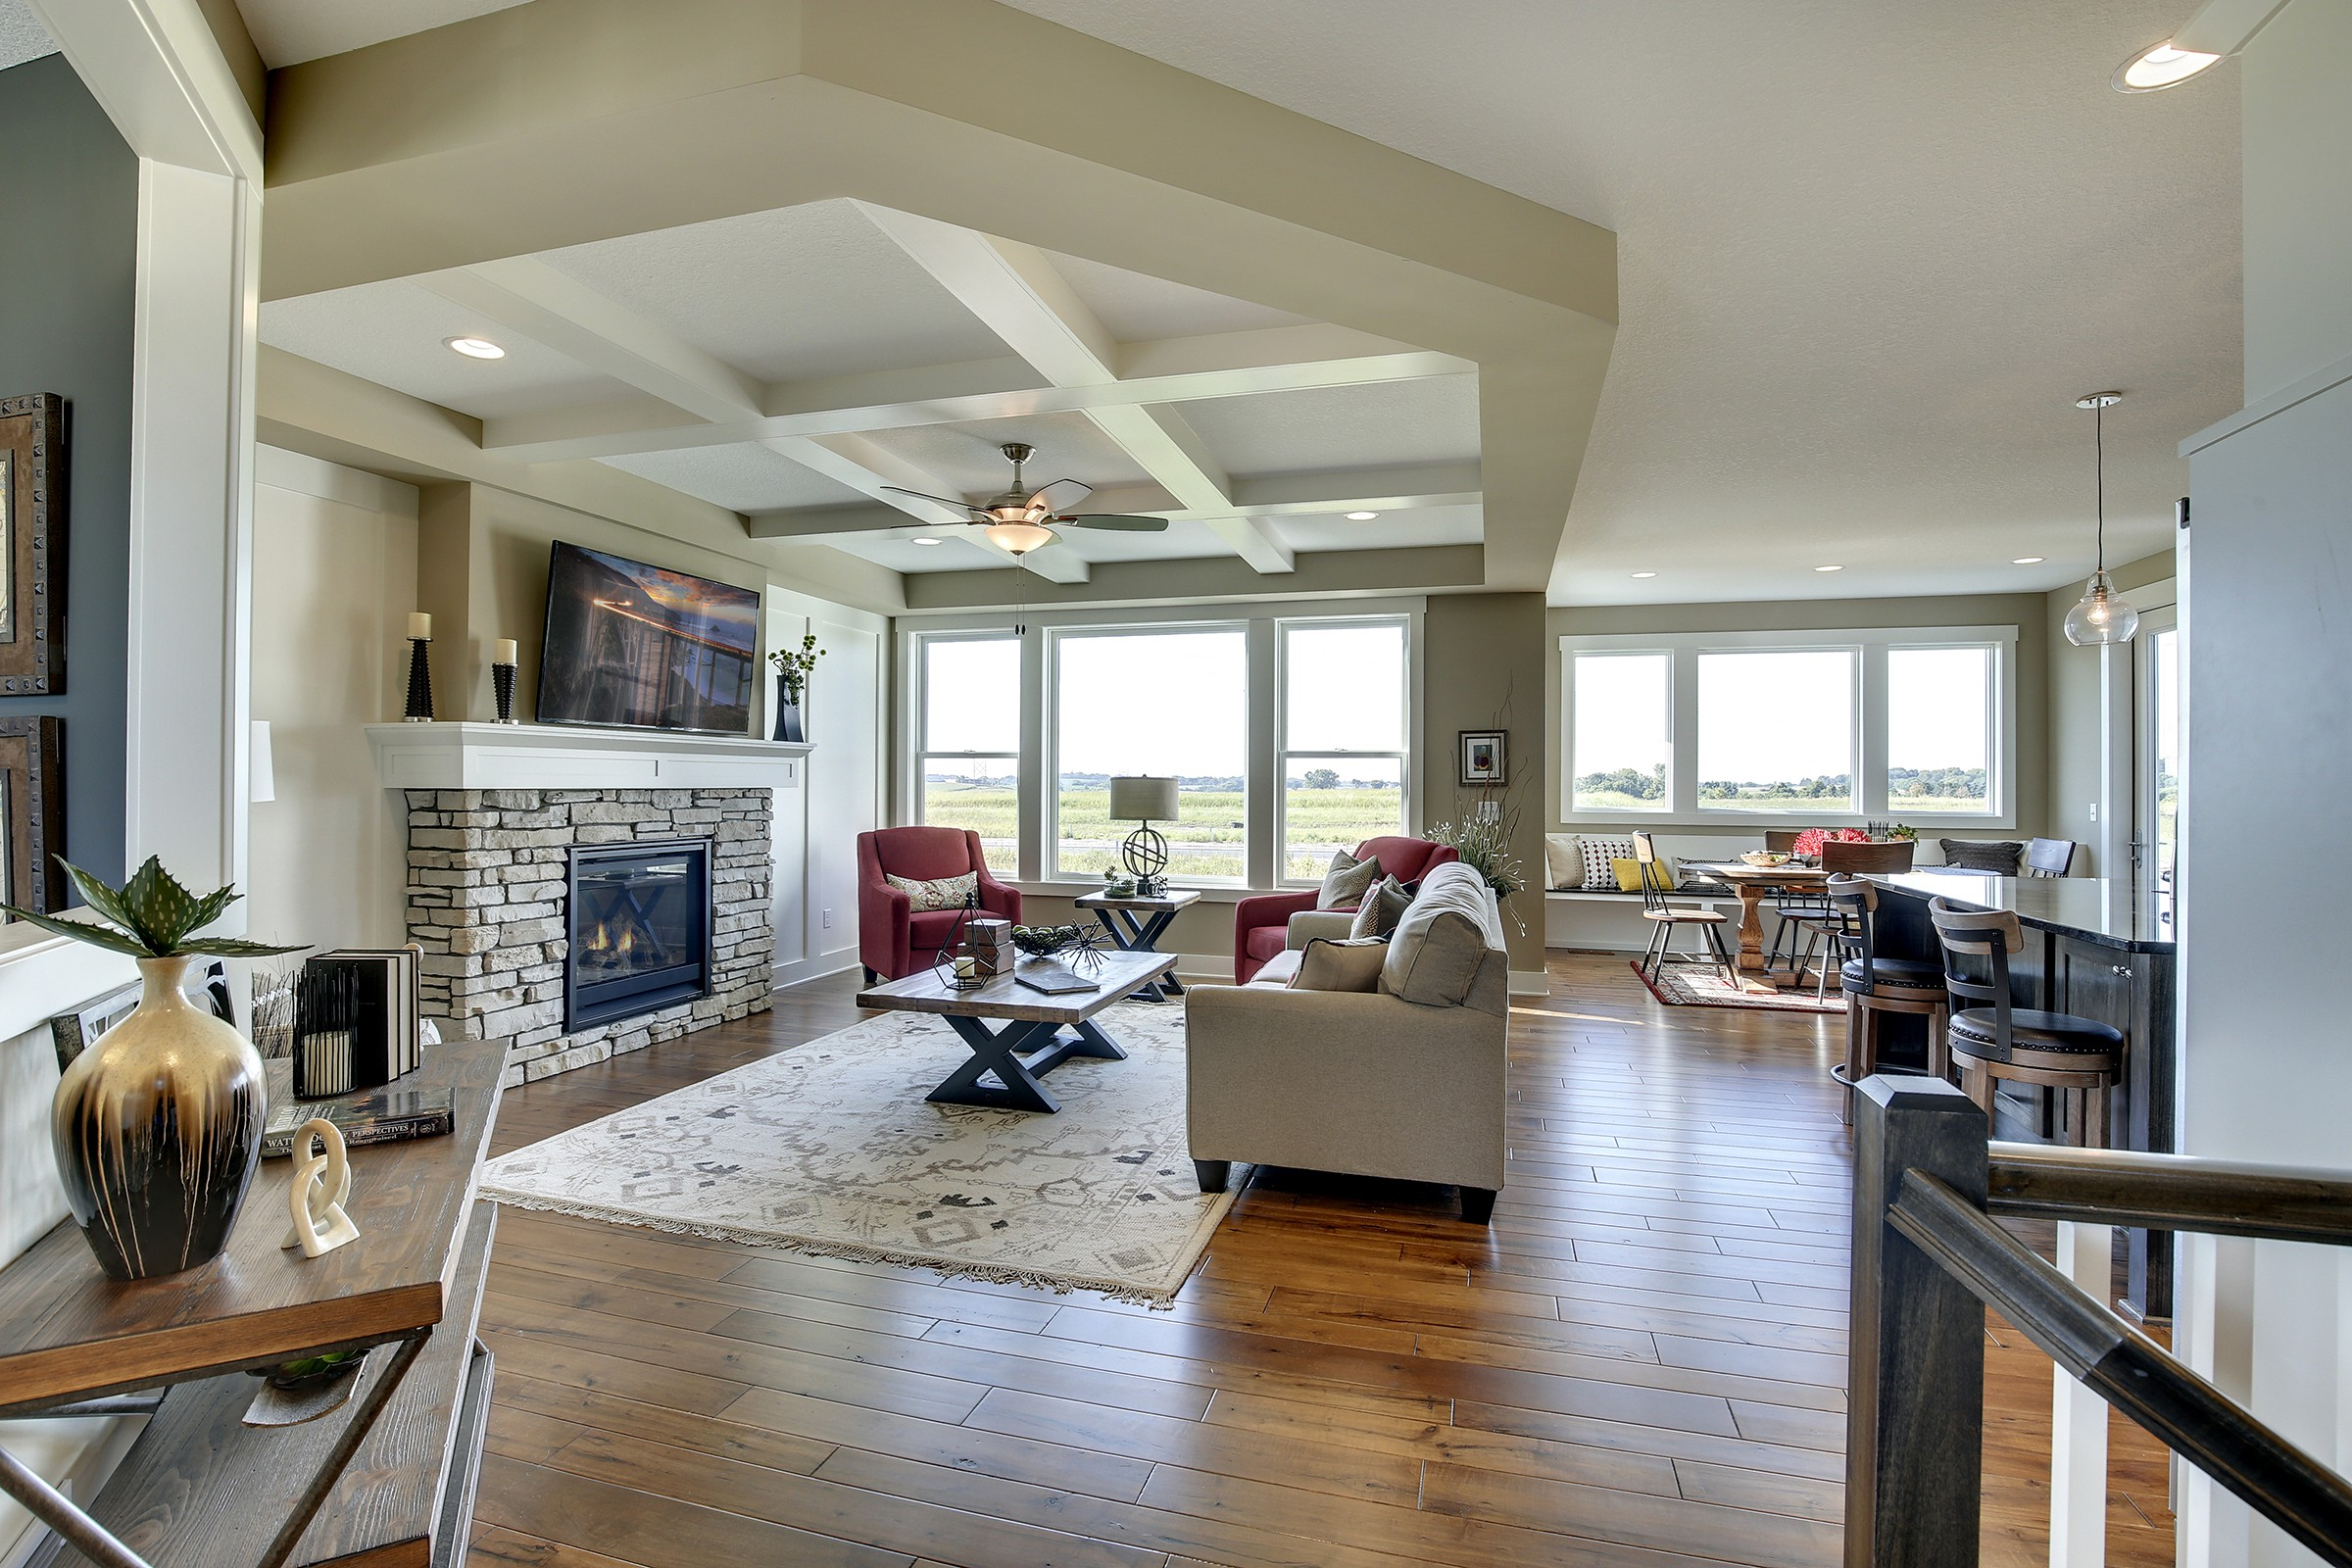 Hardwood Floors & Tiered Ceiling